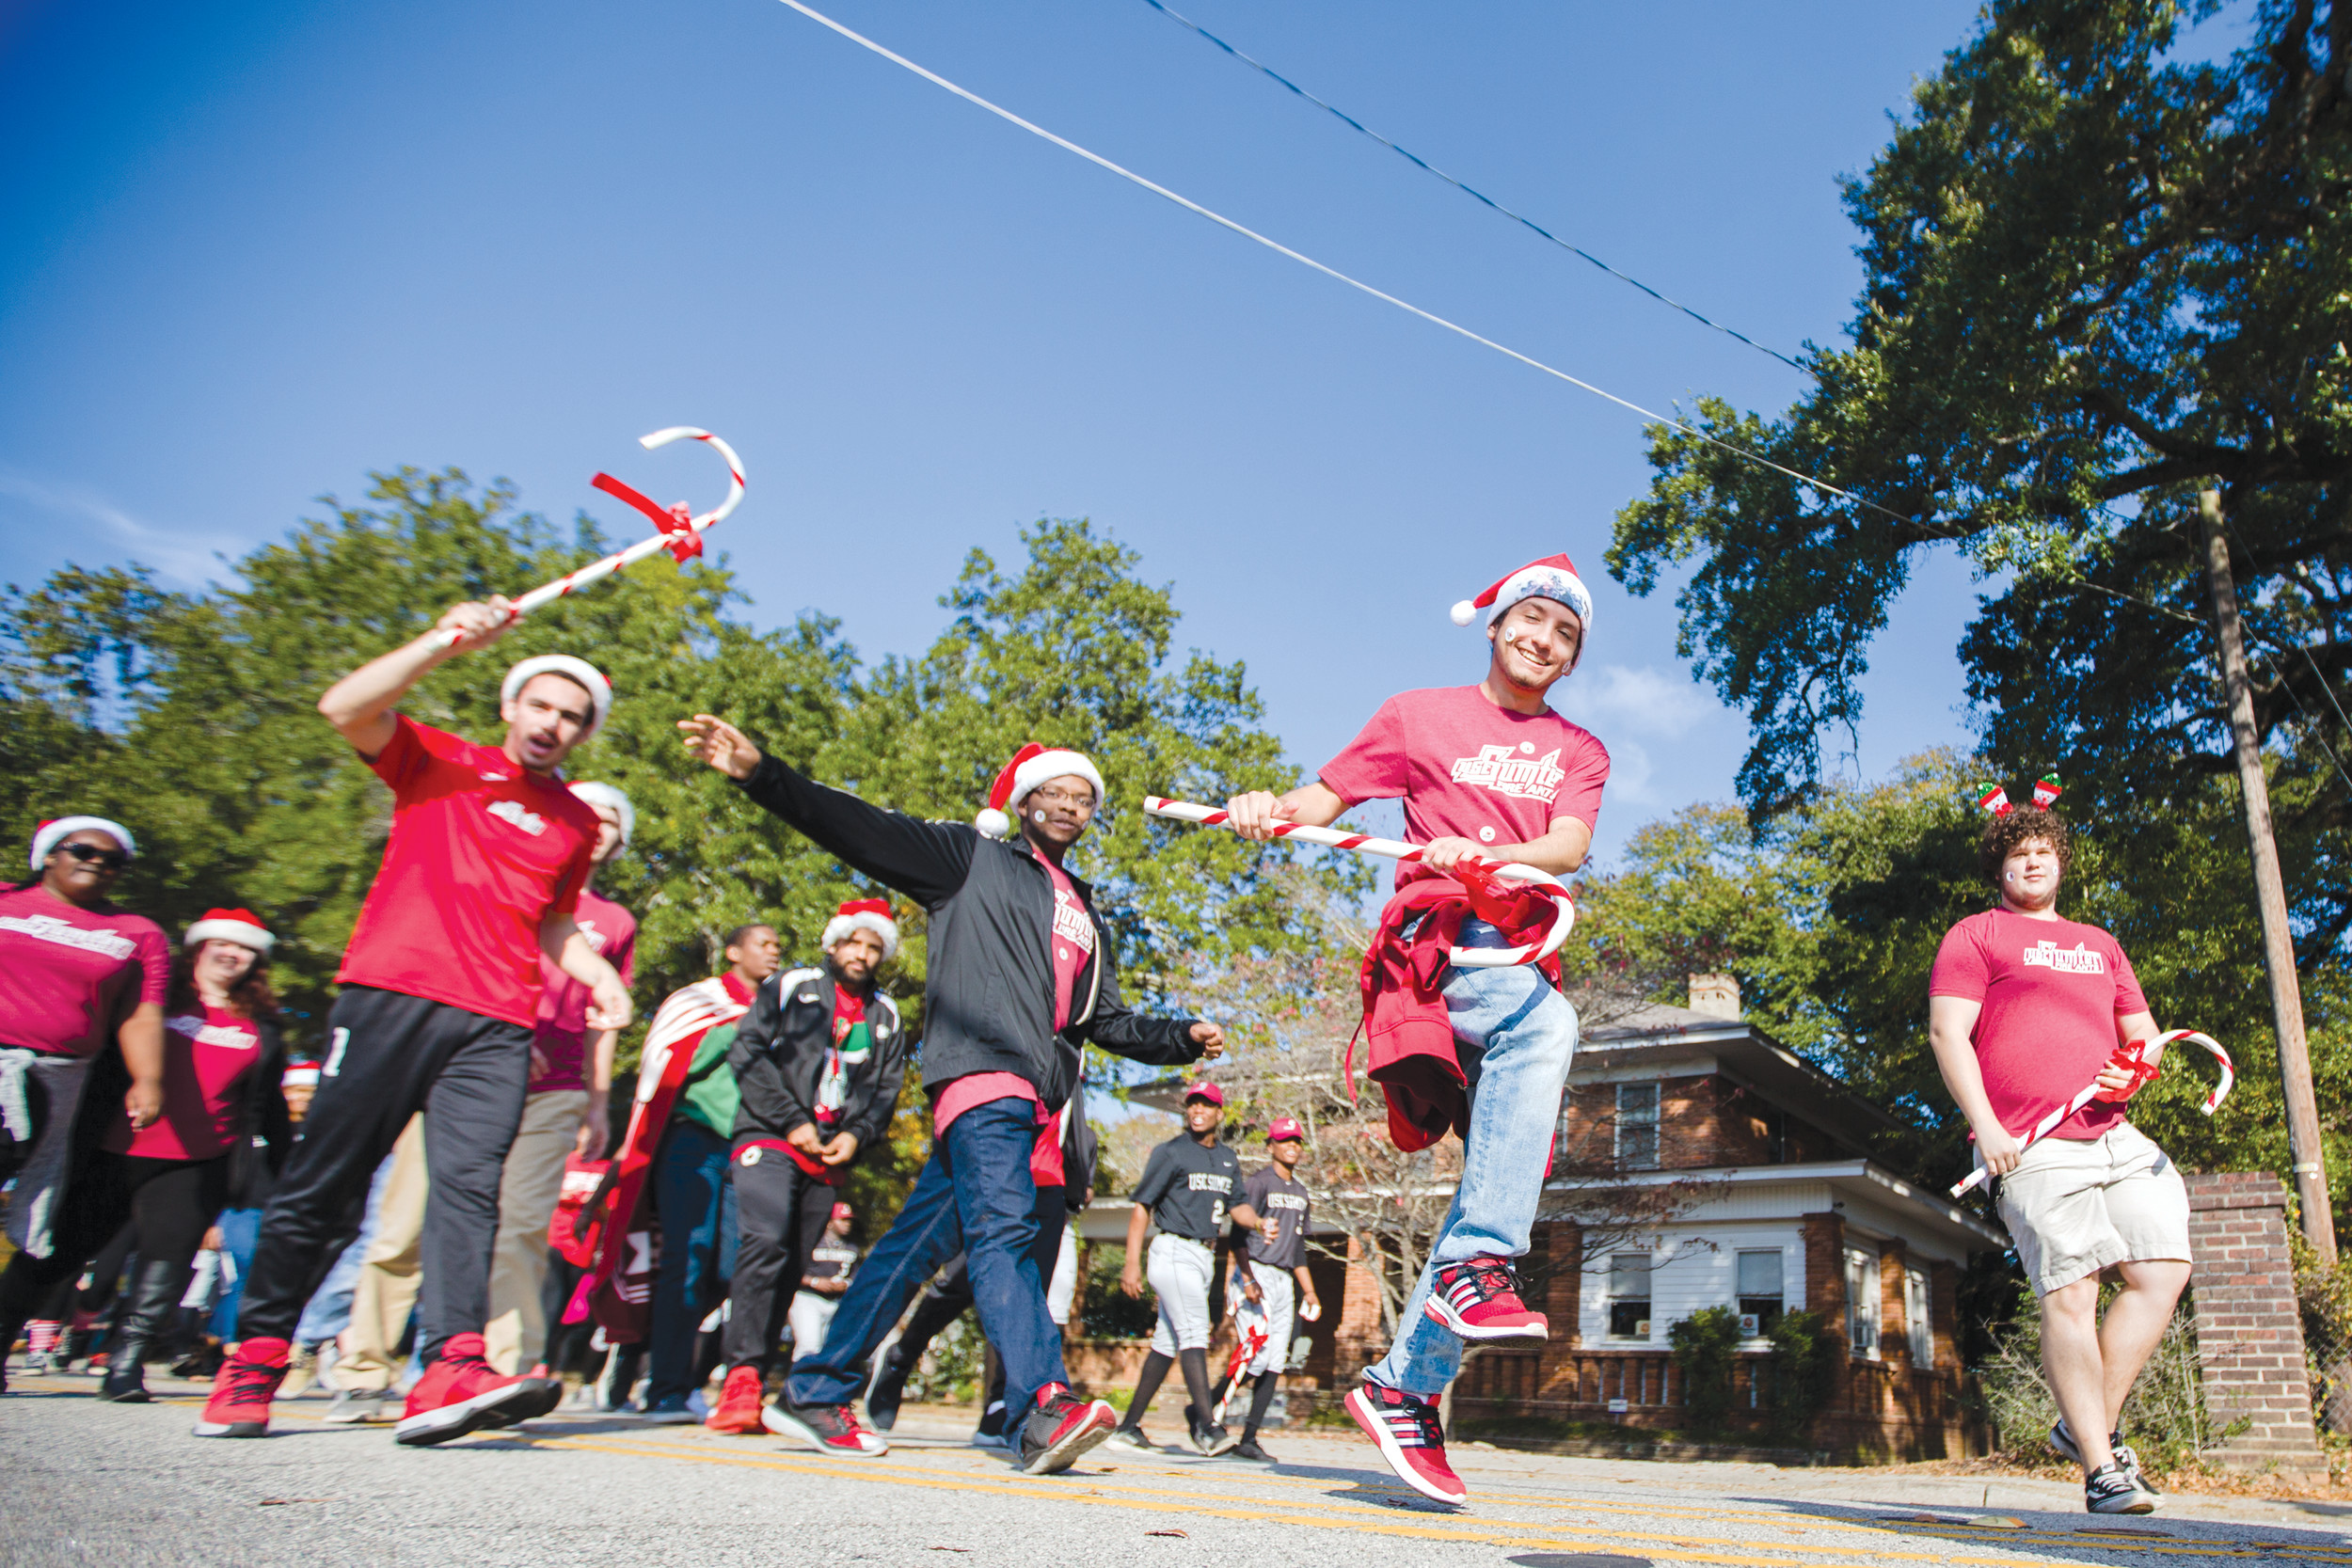 Students from University of South Carolina Sumter march at the annual Sumter Christmas Parade as they make their way along the route on Sunday.